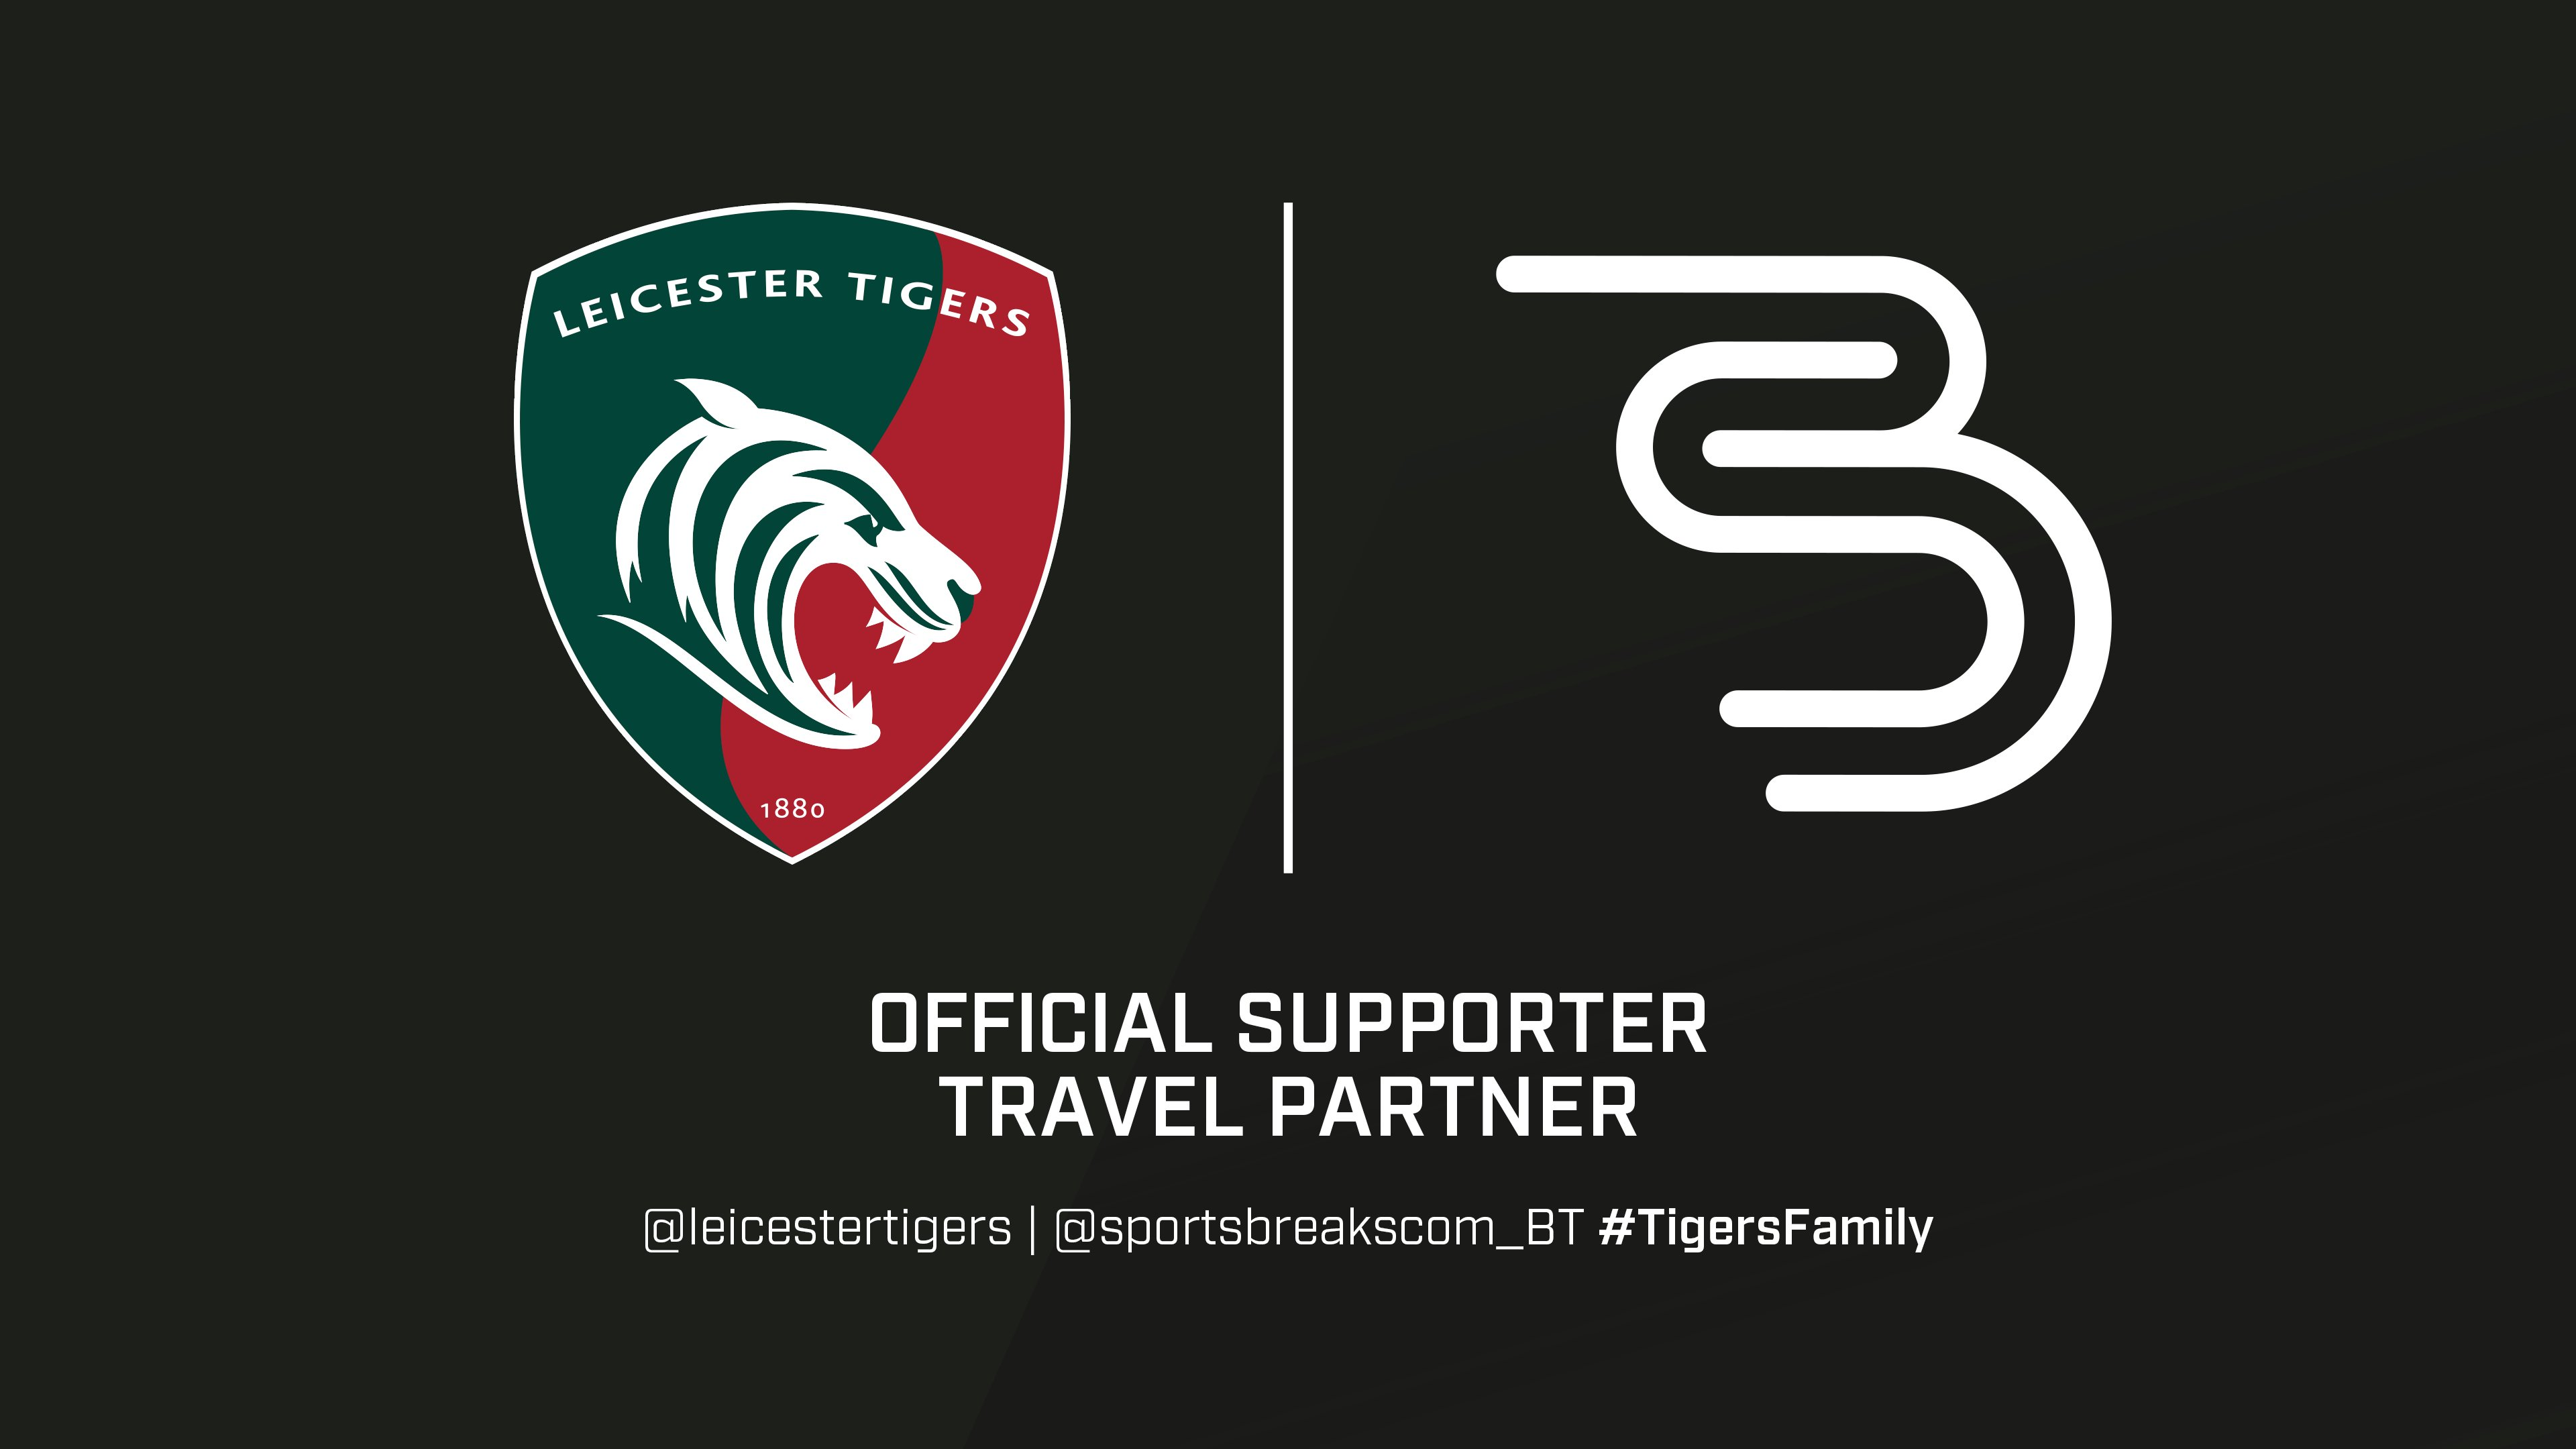 CLARITY & SPORTSBREAKS.COM EXTEND PARTNERSHIP WITH LEICESTER TIGERS